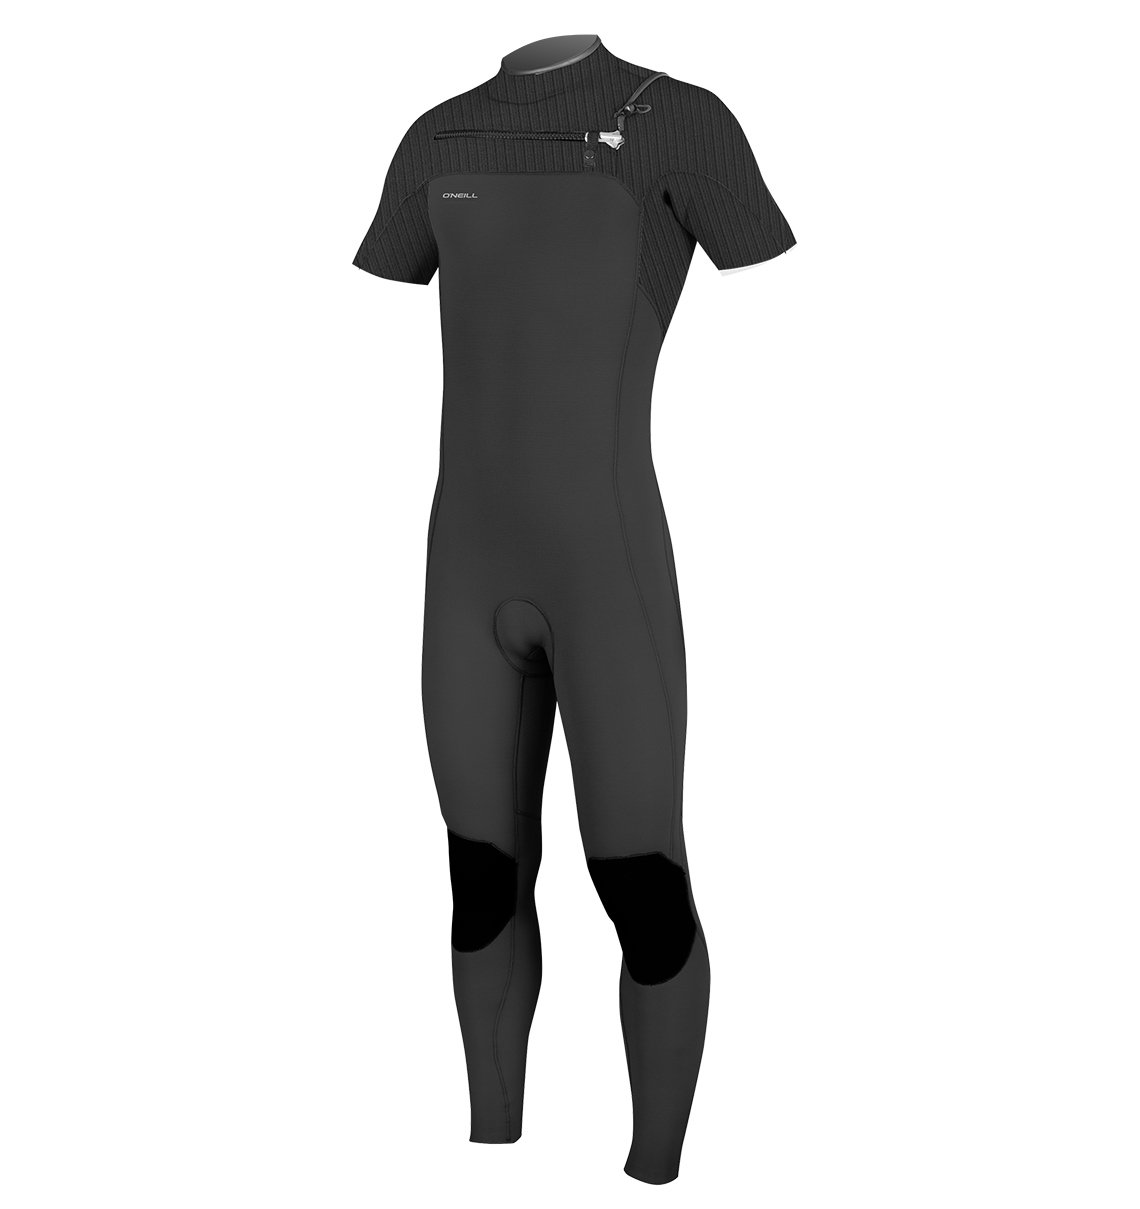 93ca9f634f Amazon.com  O Neill Men s Hyperfreak 2mm Chest Zip Short Sleeve Full Wetsuit   Sports   Outdoors